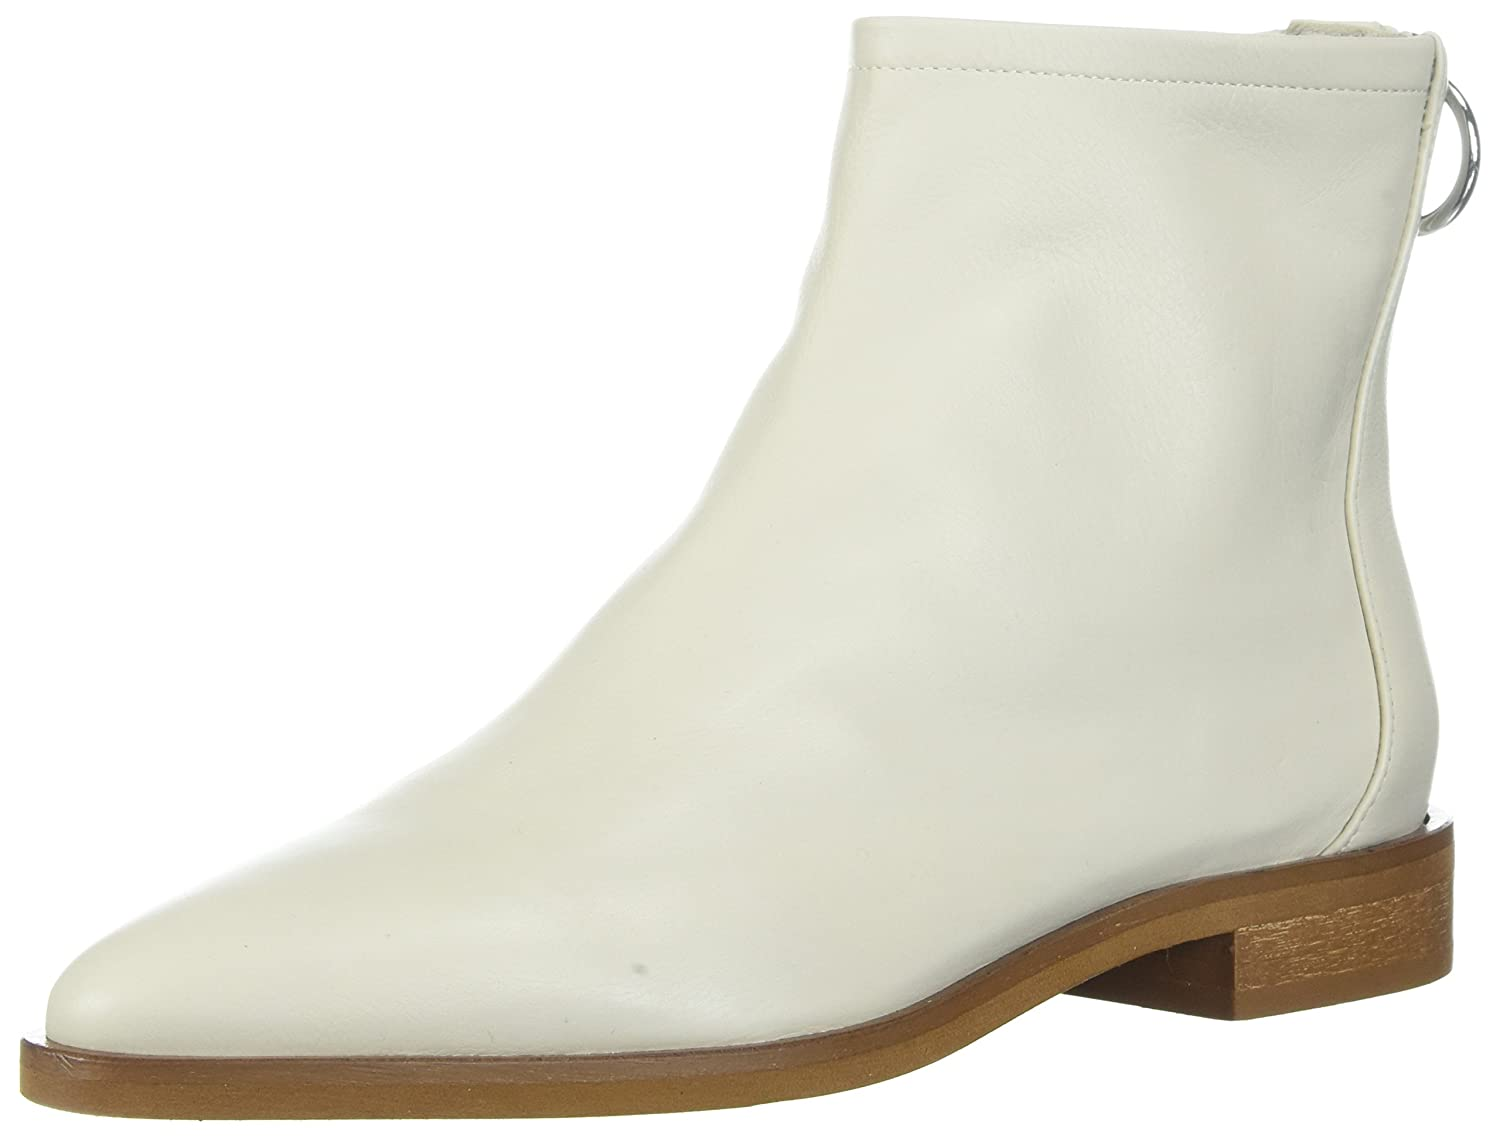 Via Spiga Womens Edie Ankle Boot